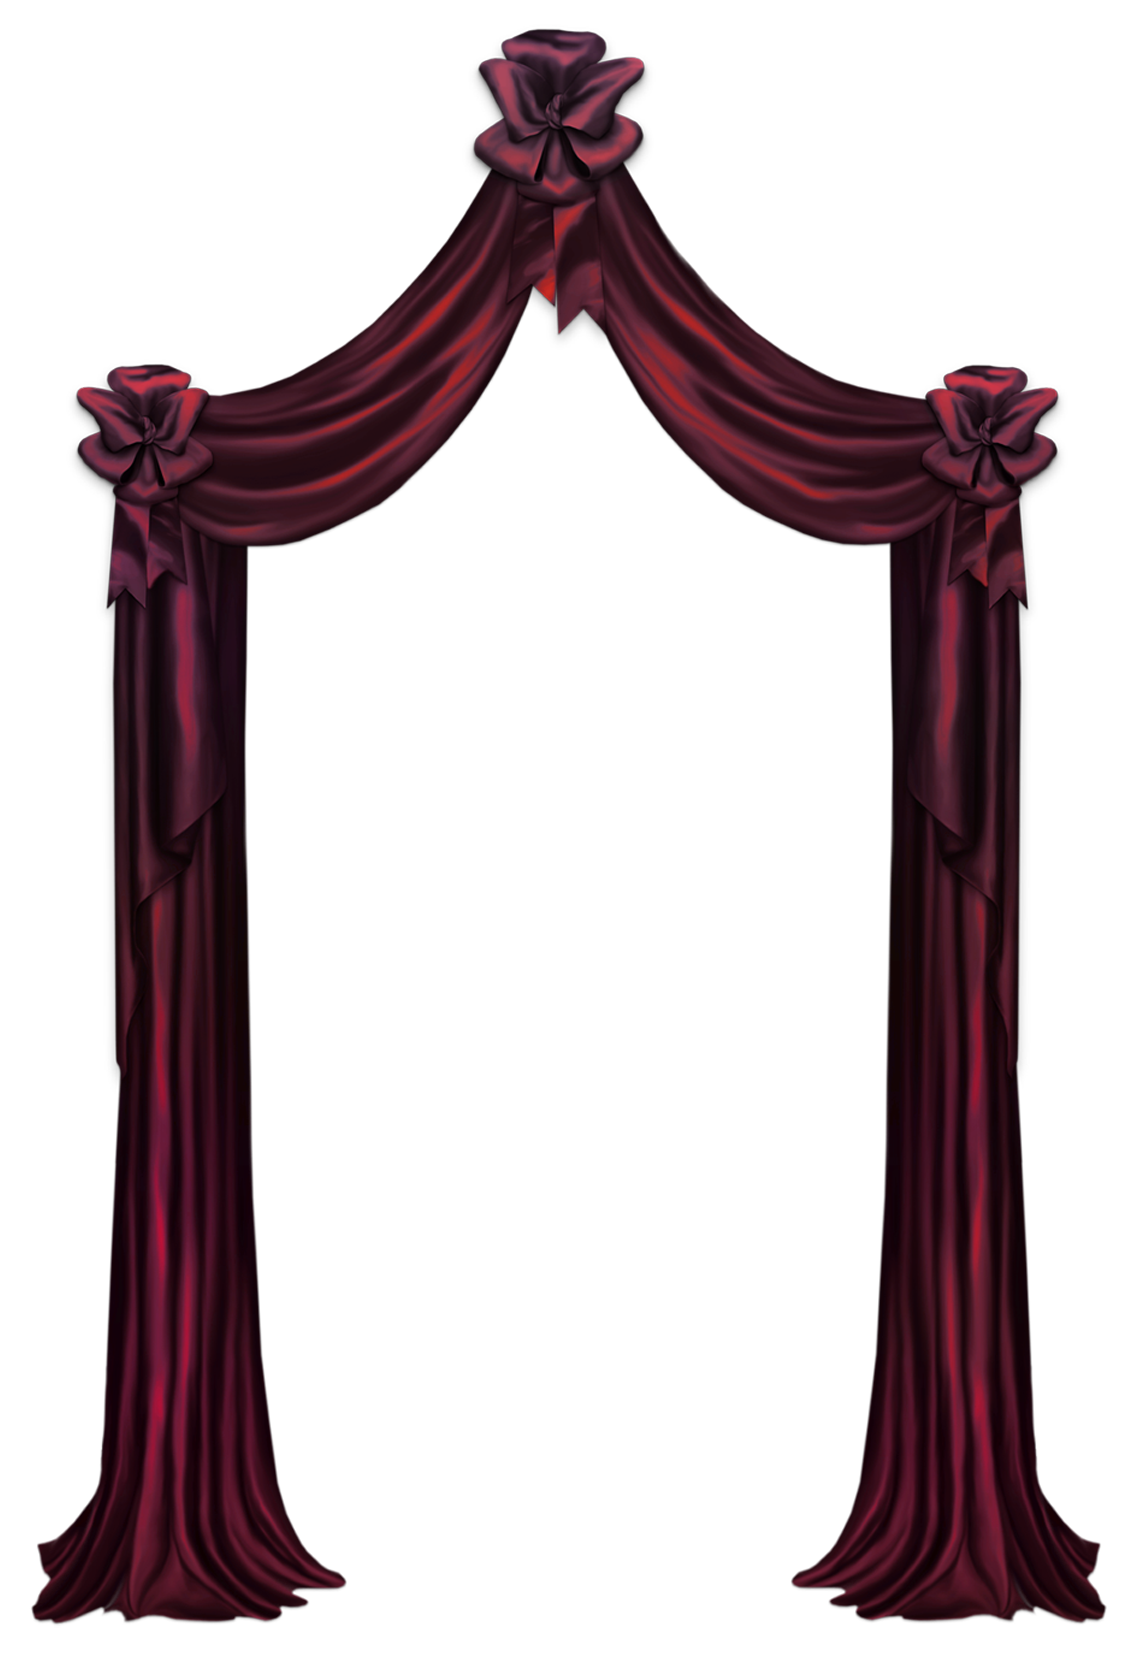 Gothic curtains png. Red curtain decor clipart